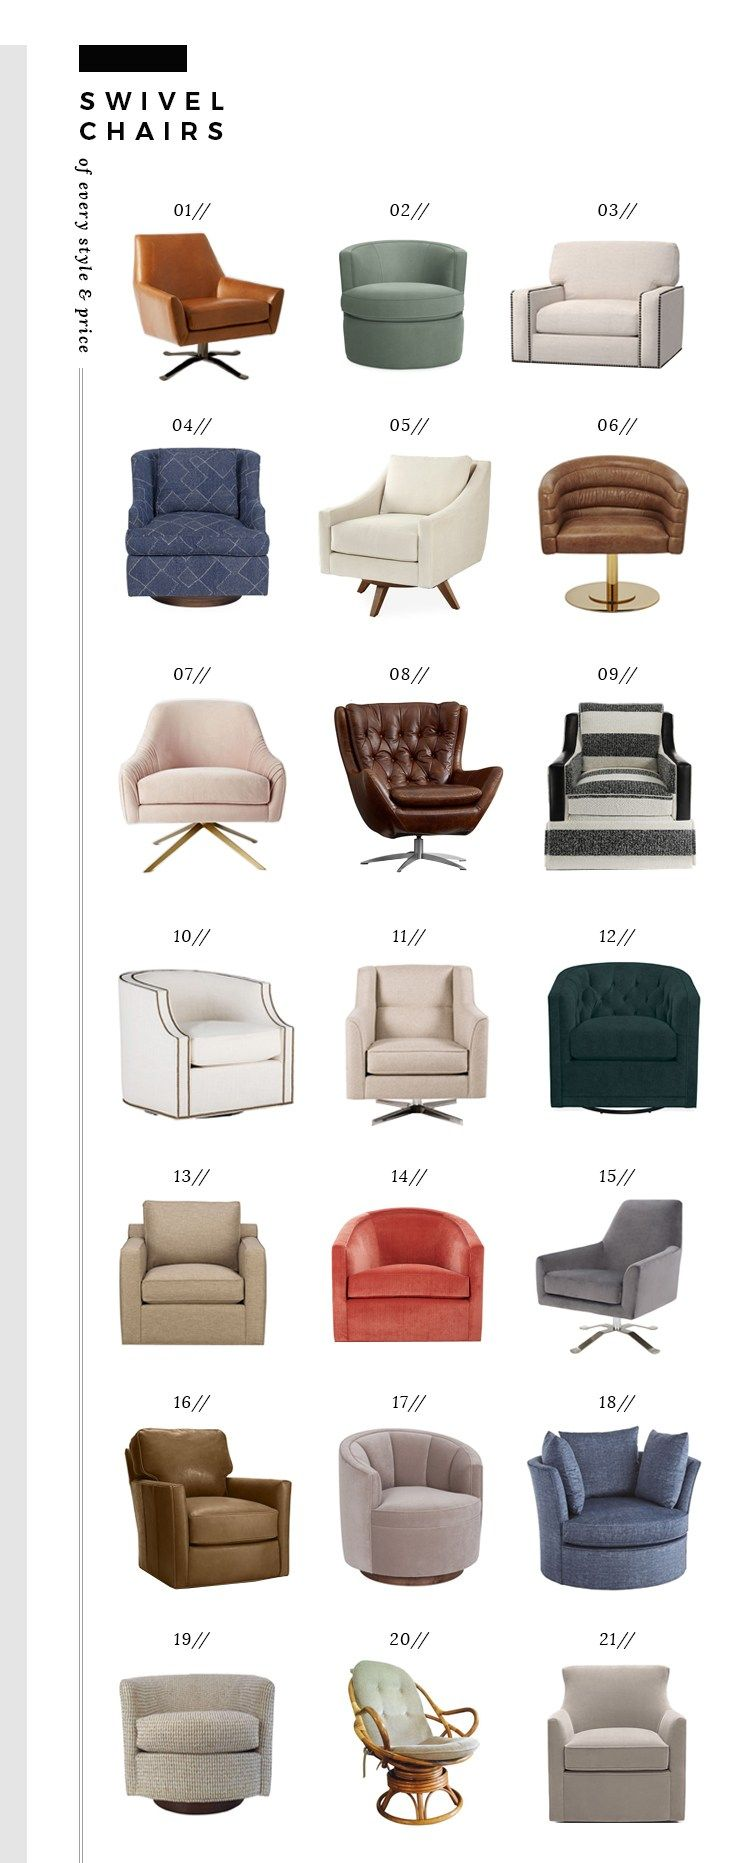 Comfortable Swivel Chairs Of Every Style And Price Room For Tuesday Swivel Chair Living Room Comfortable Accent Chairs Modern Swivel Chair